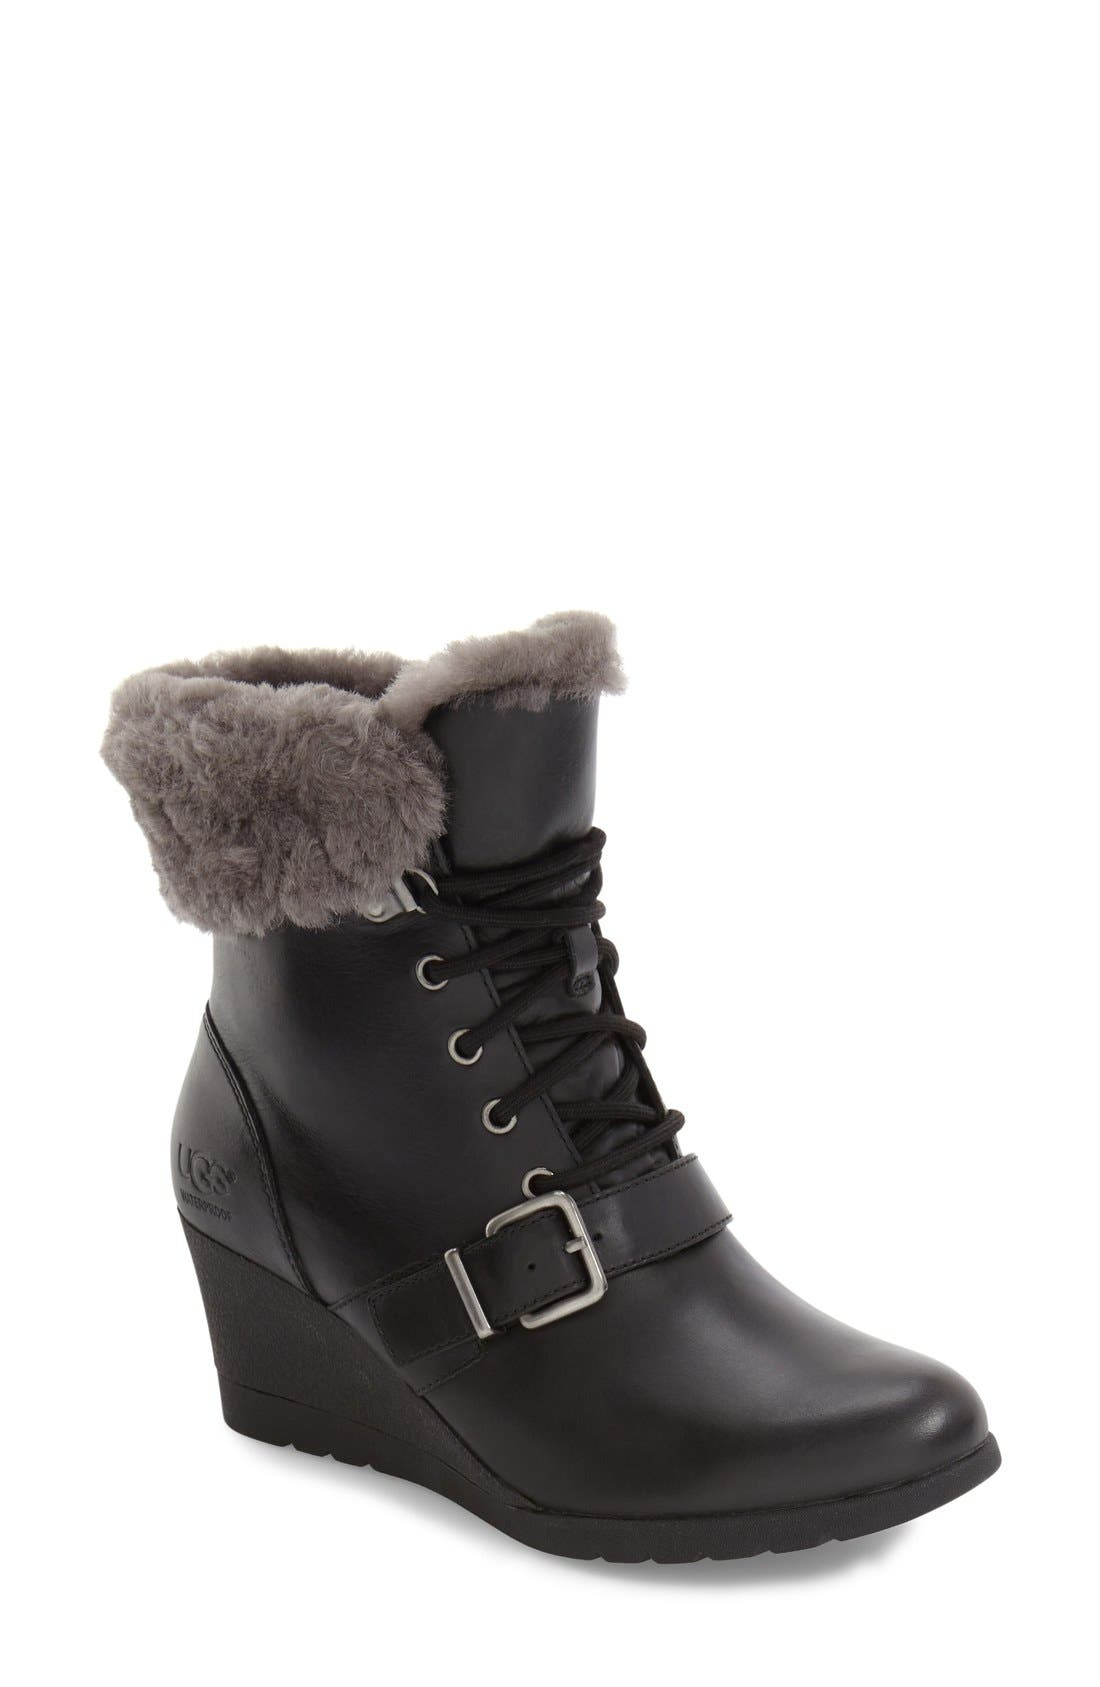 Janney Waterproof Thinsulate<sup>®</sup> Wedge Bootie,                             Main thumbnail 1, color,                             001